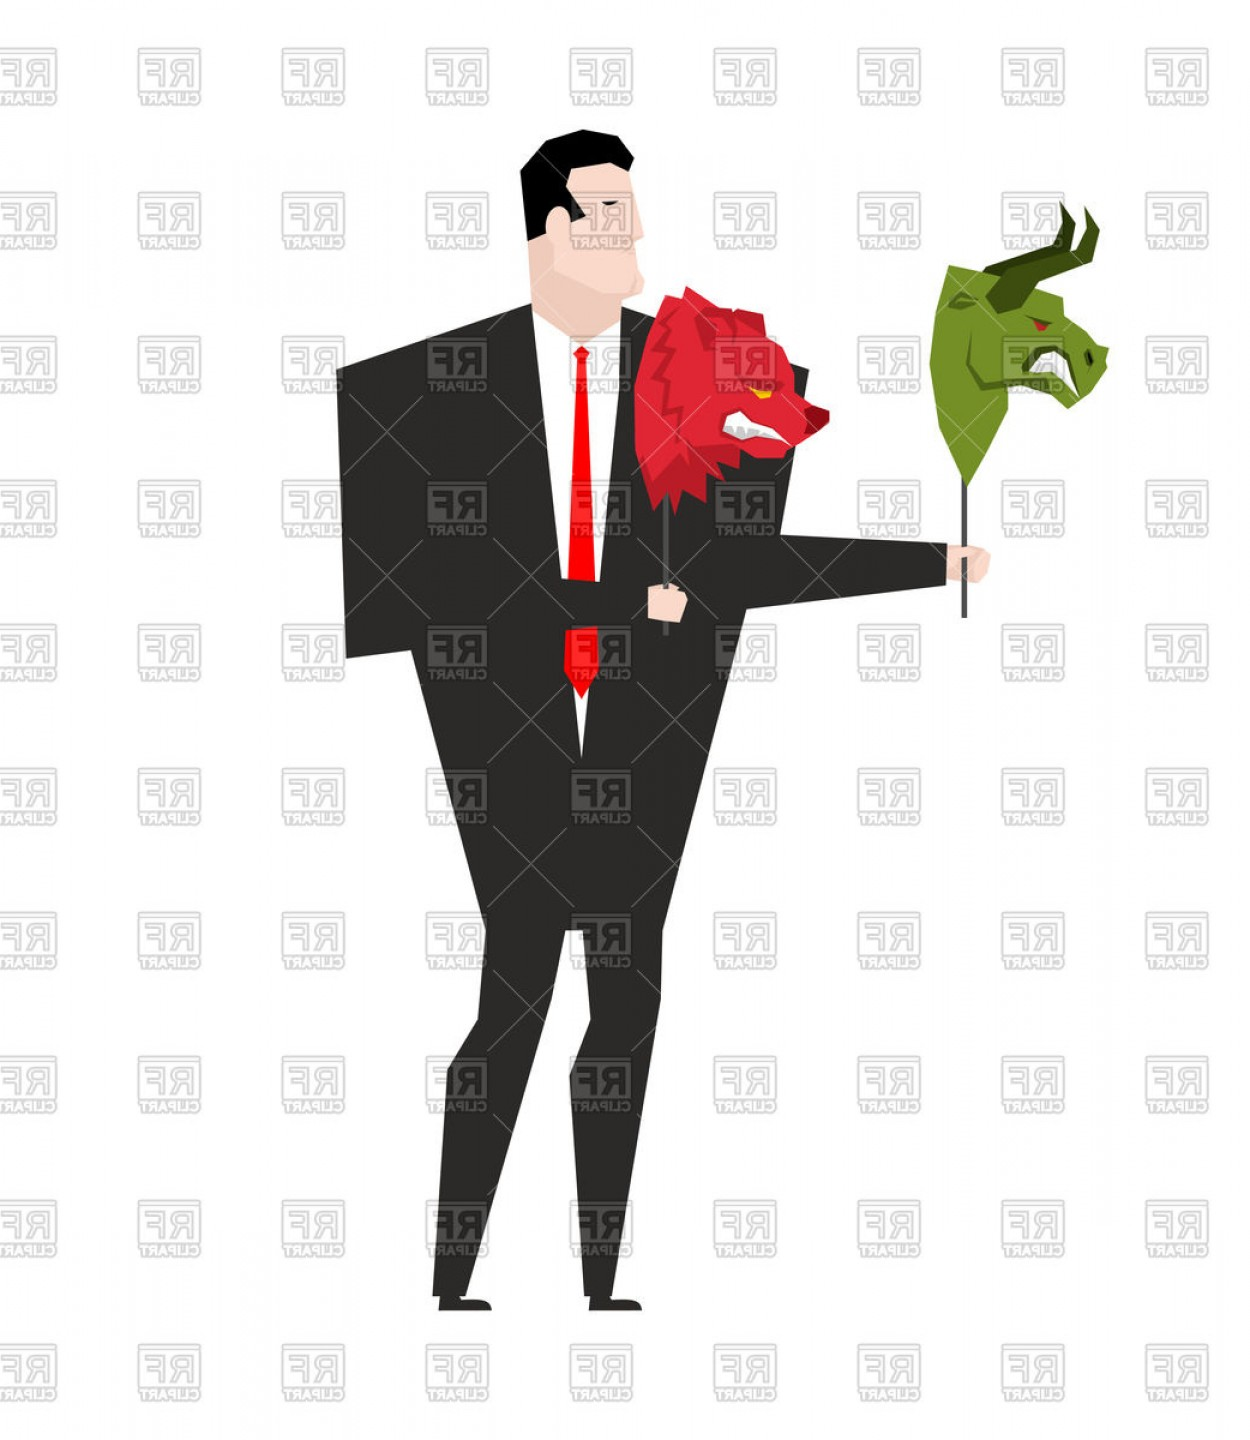 Gas Mask Suit And Tie Vector: Trader And Mask Of Green Bear And Red Bull Vector Clipart